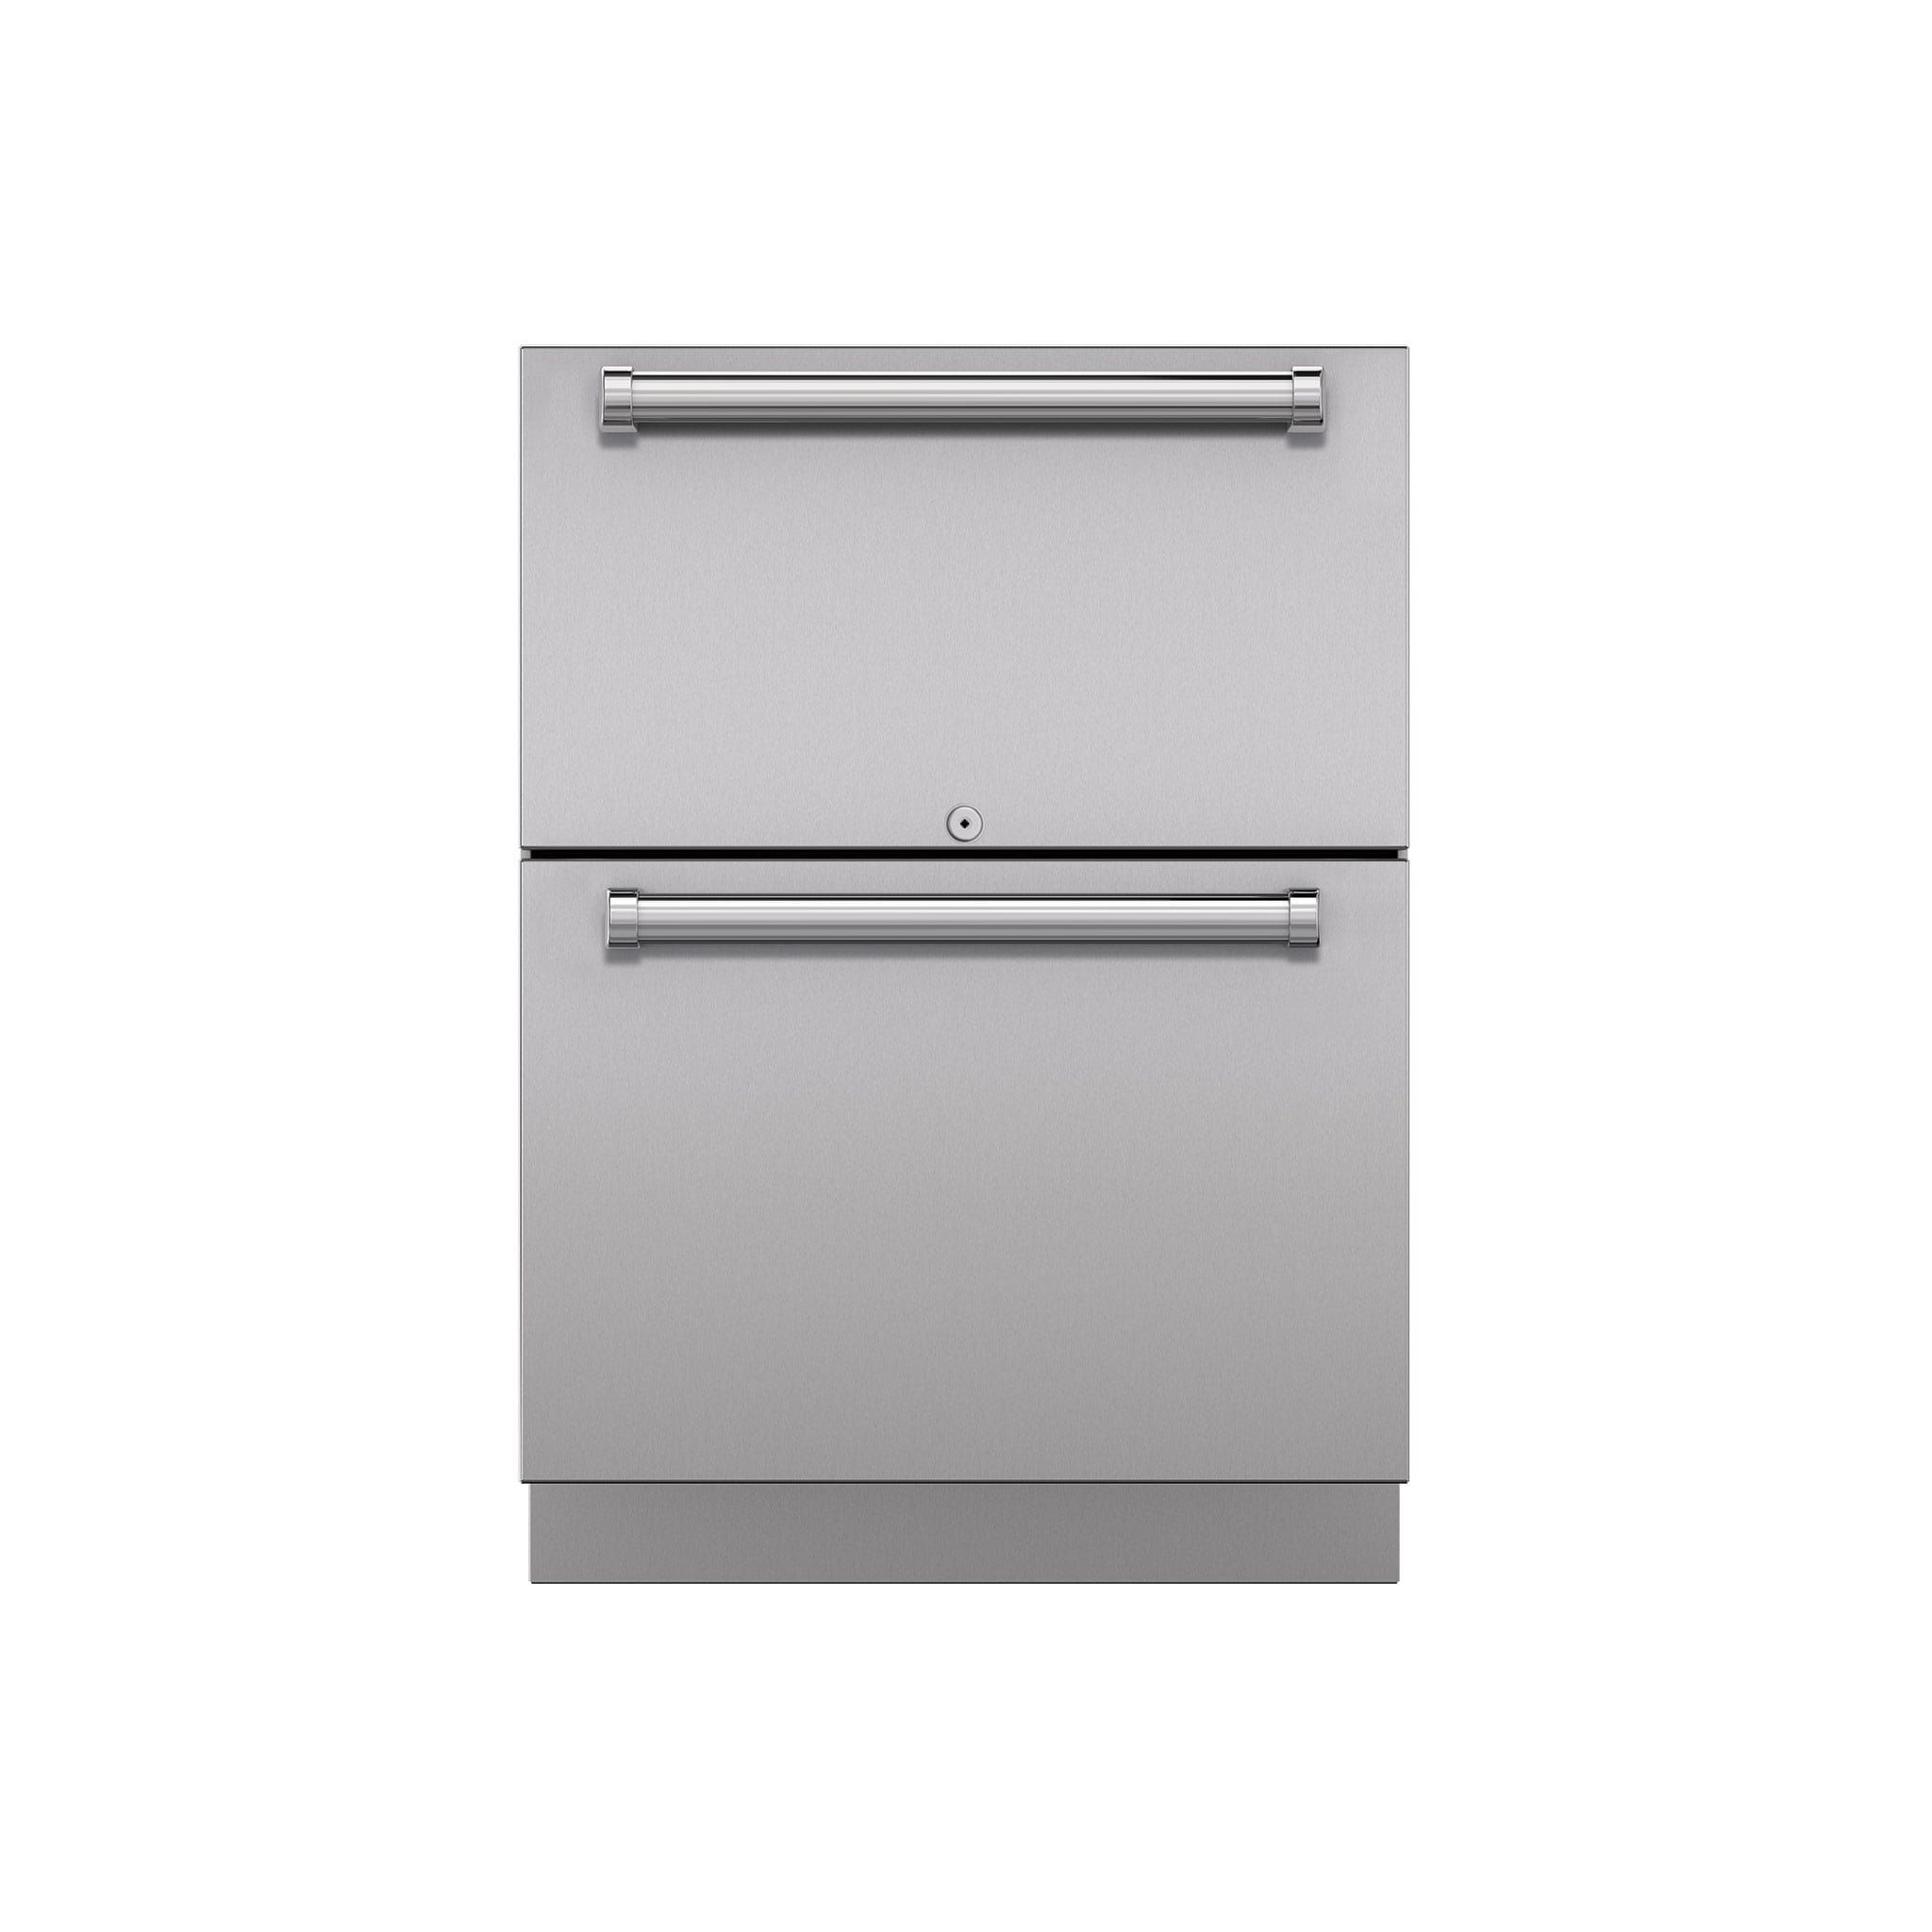 Unusual Silo Id 24ro Icbid 24ro 122016 Panel Ready Refrigerator Reviews Panel Ready Refrigerator Fisher Paykel houzz 01 Panel Ready Refrigerator